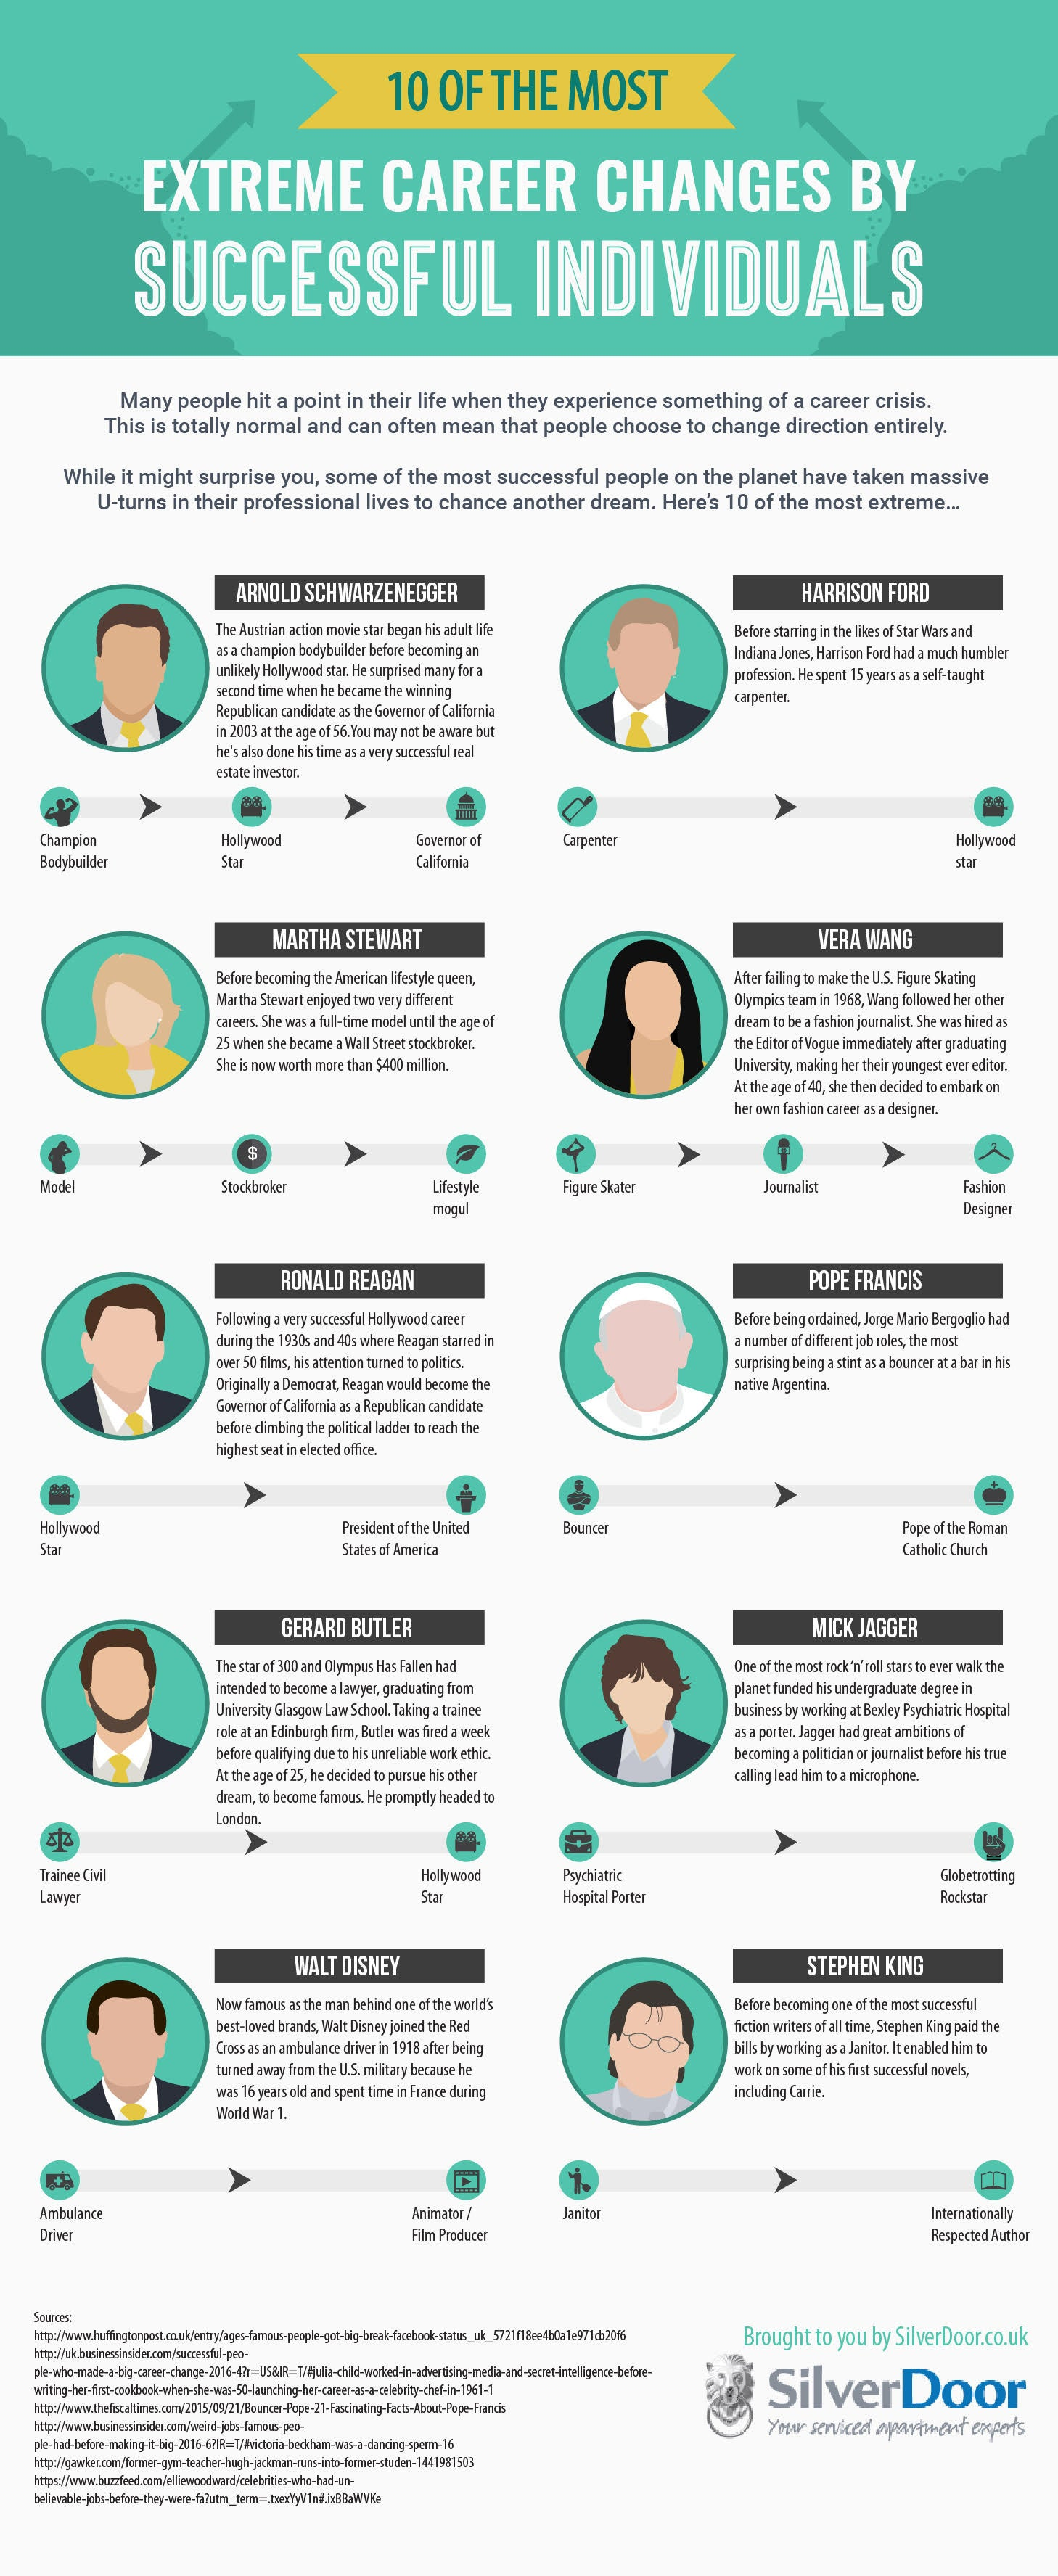 10 extreme career changes by celebrities infographic from mick jagger to stephen king some of your favorite celebrities started their careers in some unexpected ways check out silverdoor s infographic